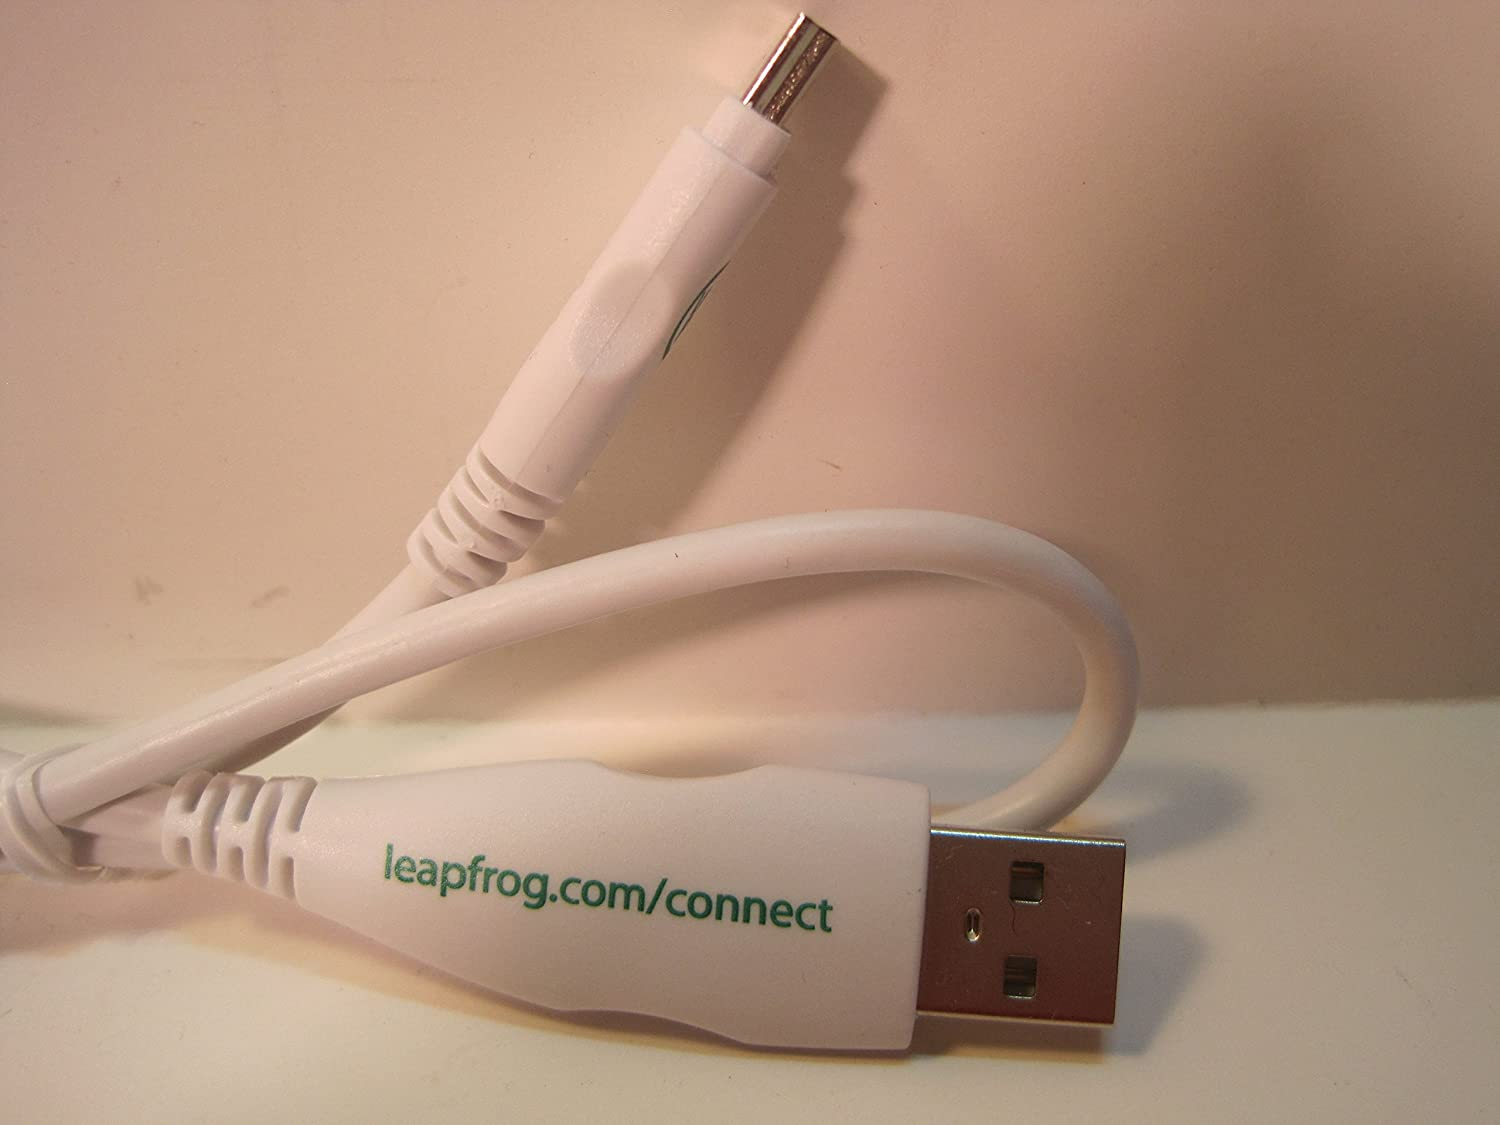 Leapfrog Connect 24 Inches USB Cable